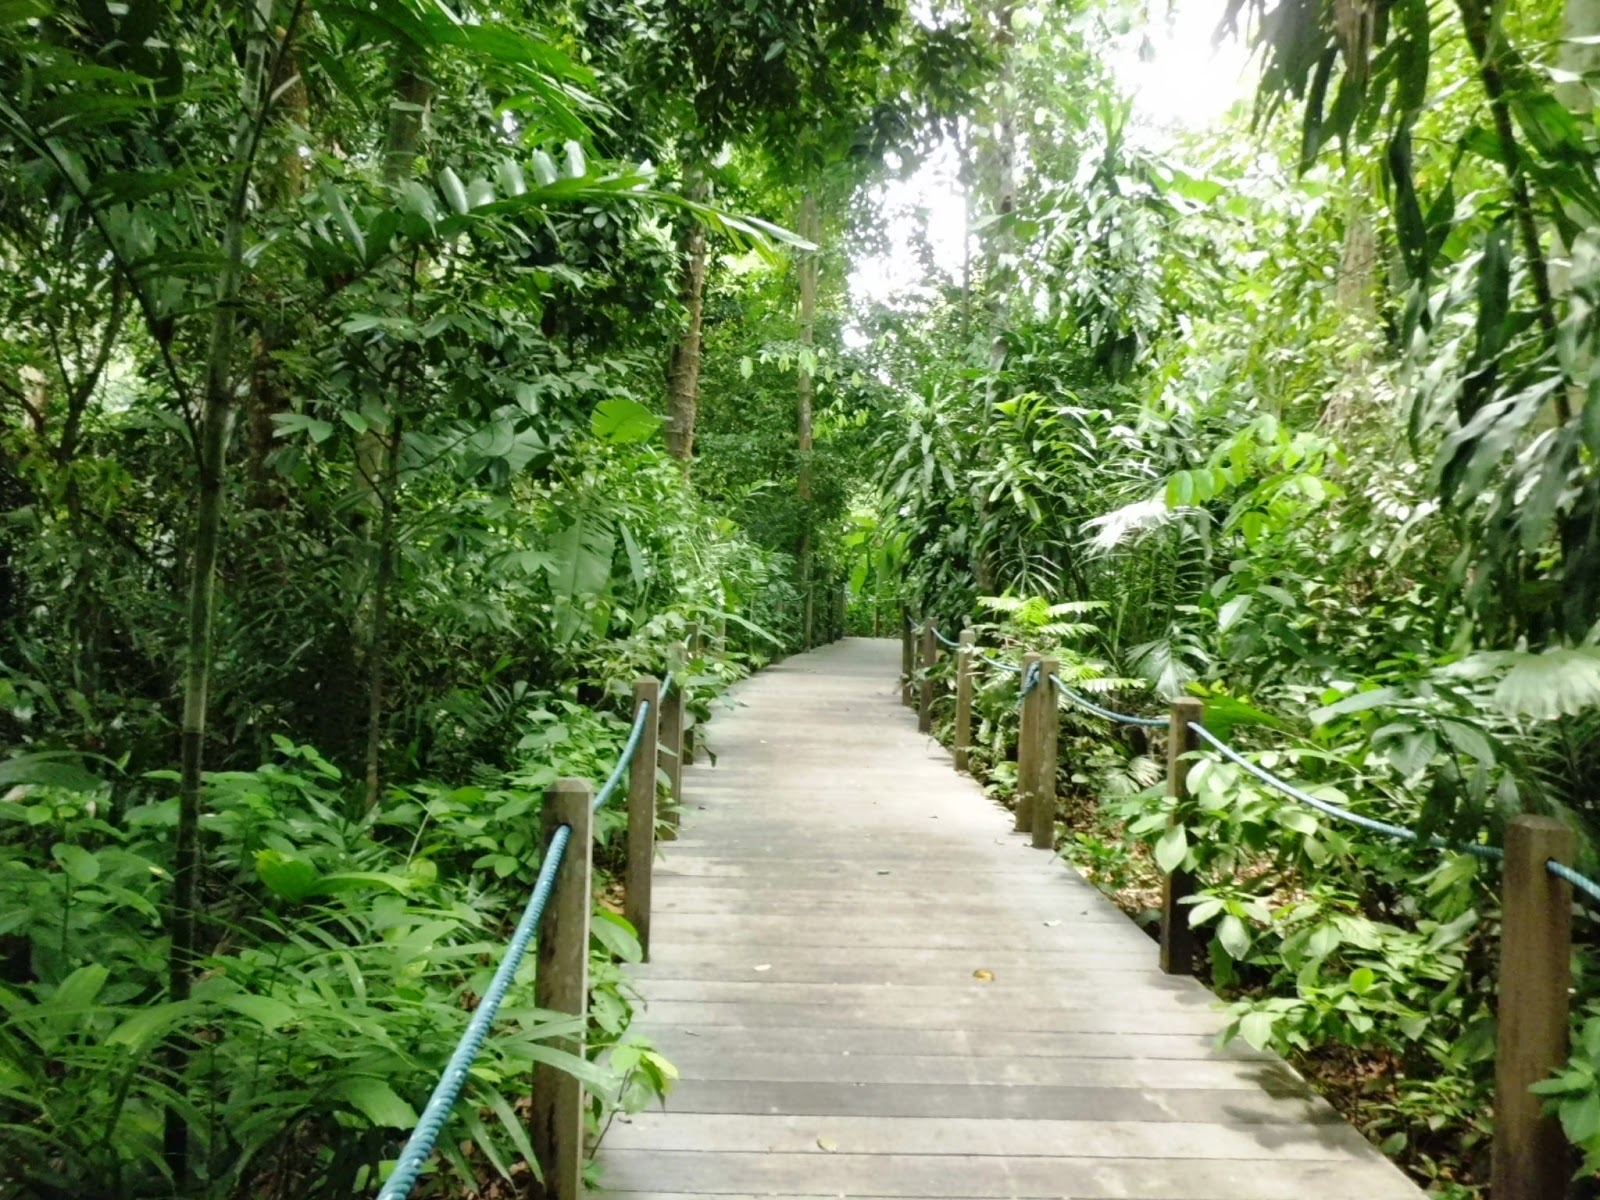 Singapore Botanic Gardens - Rain Forest Walking Trail